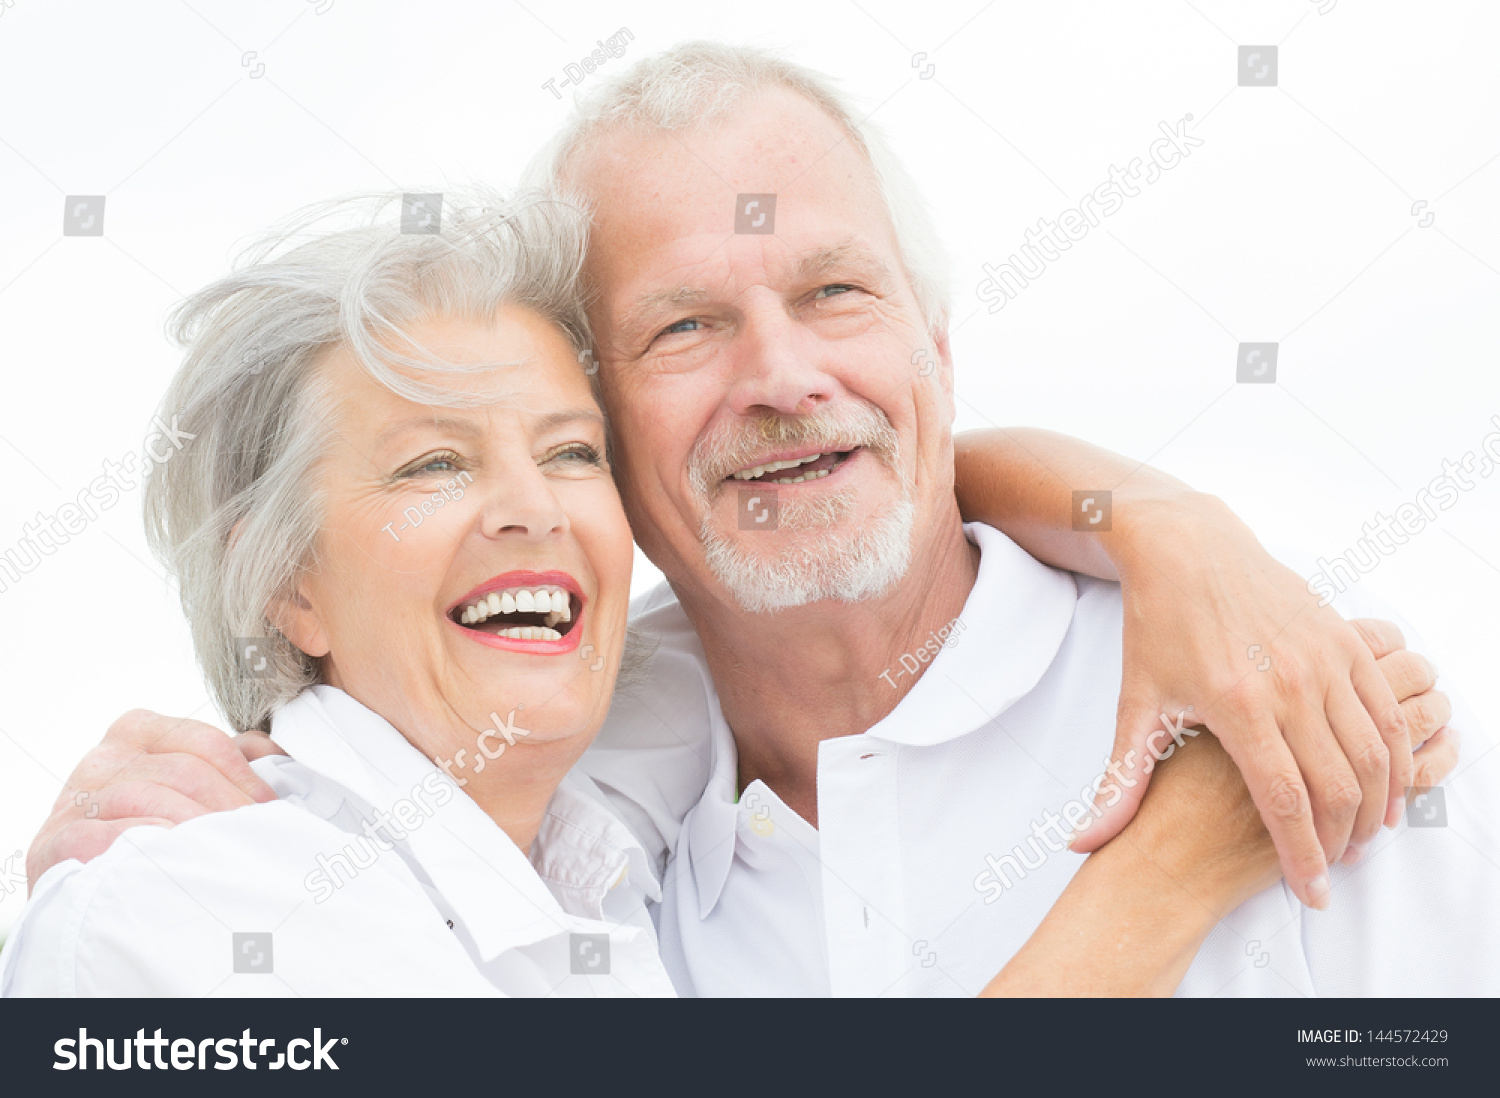 stock-photo-happy-and-smiling-couple-in-